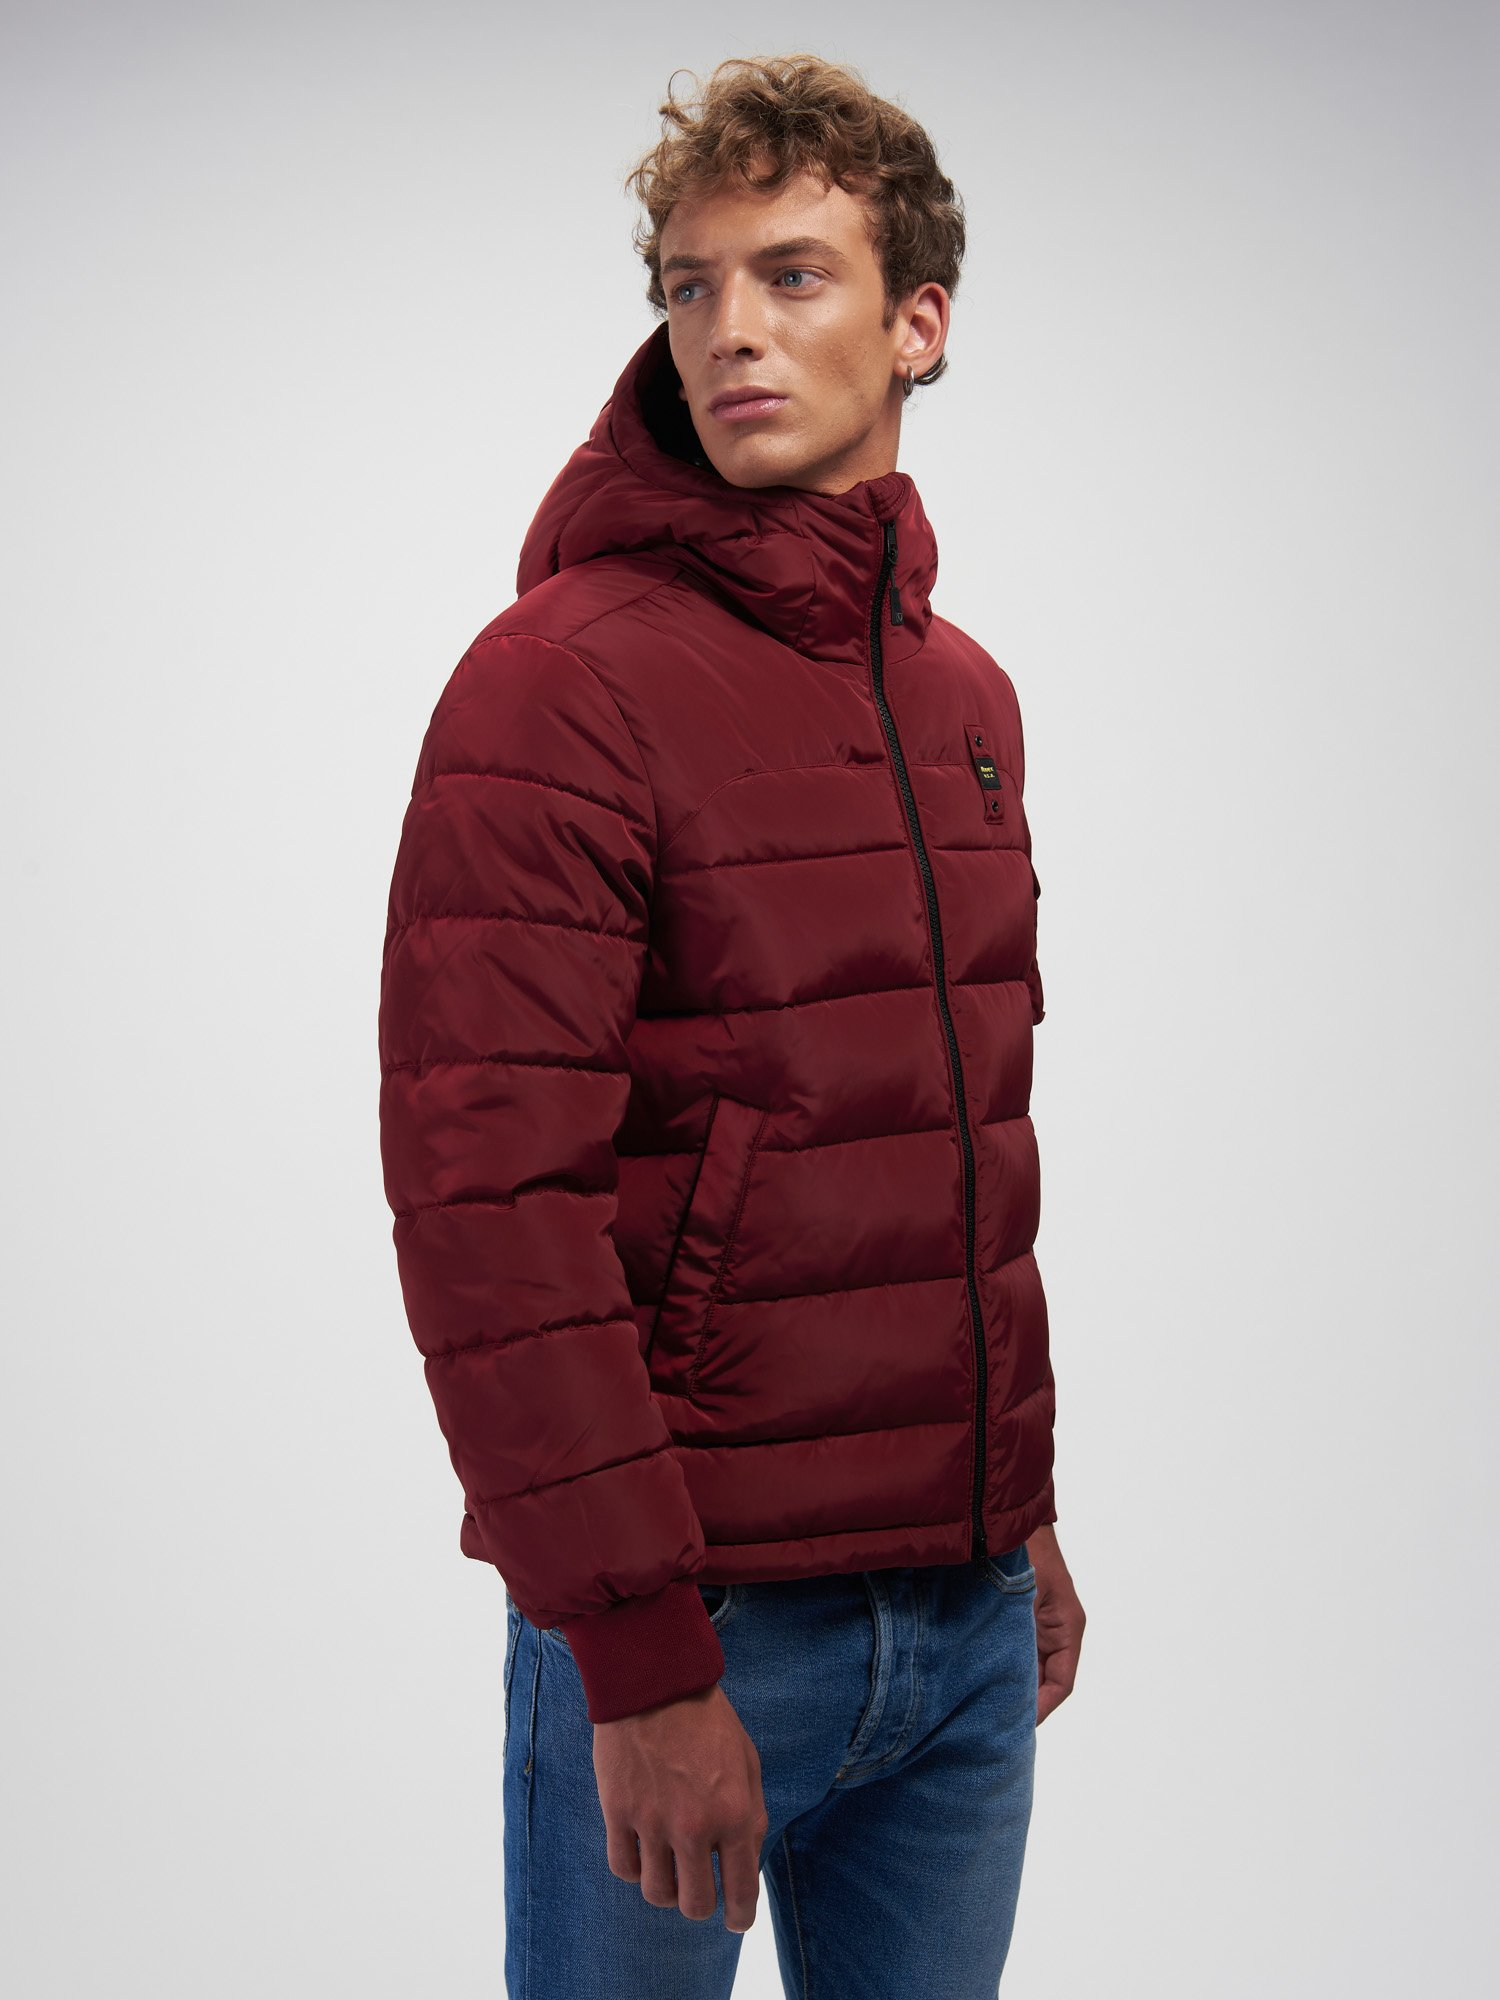 PIUMINO RECYCLED RED - Blauer